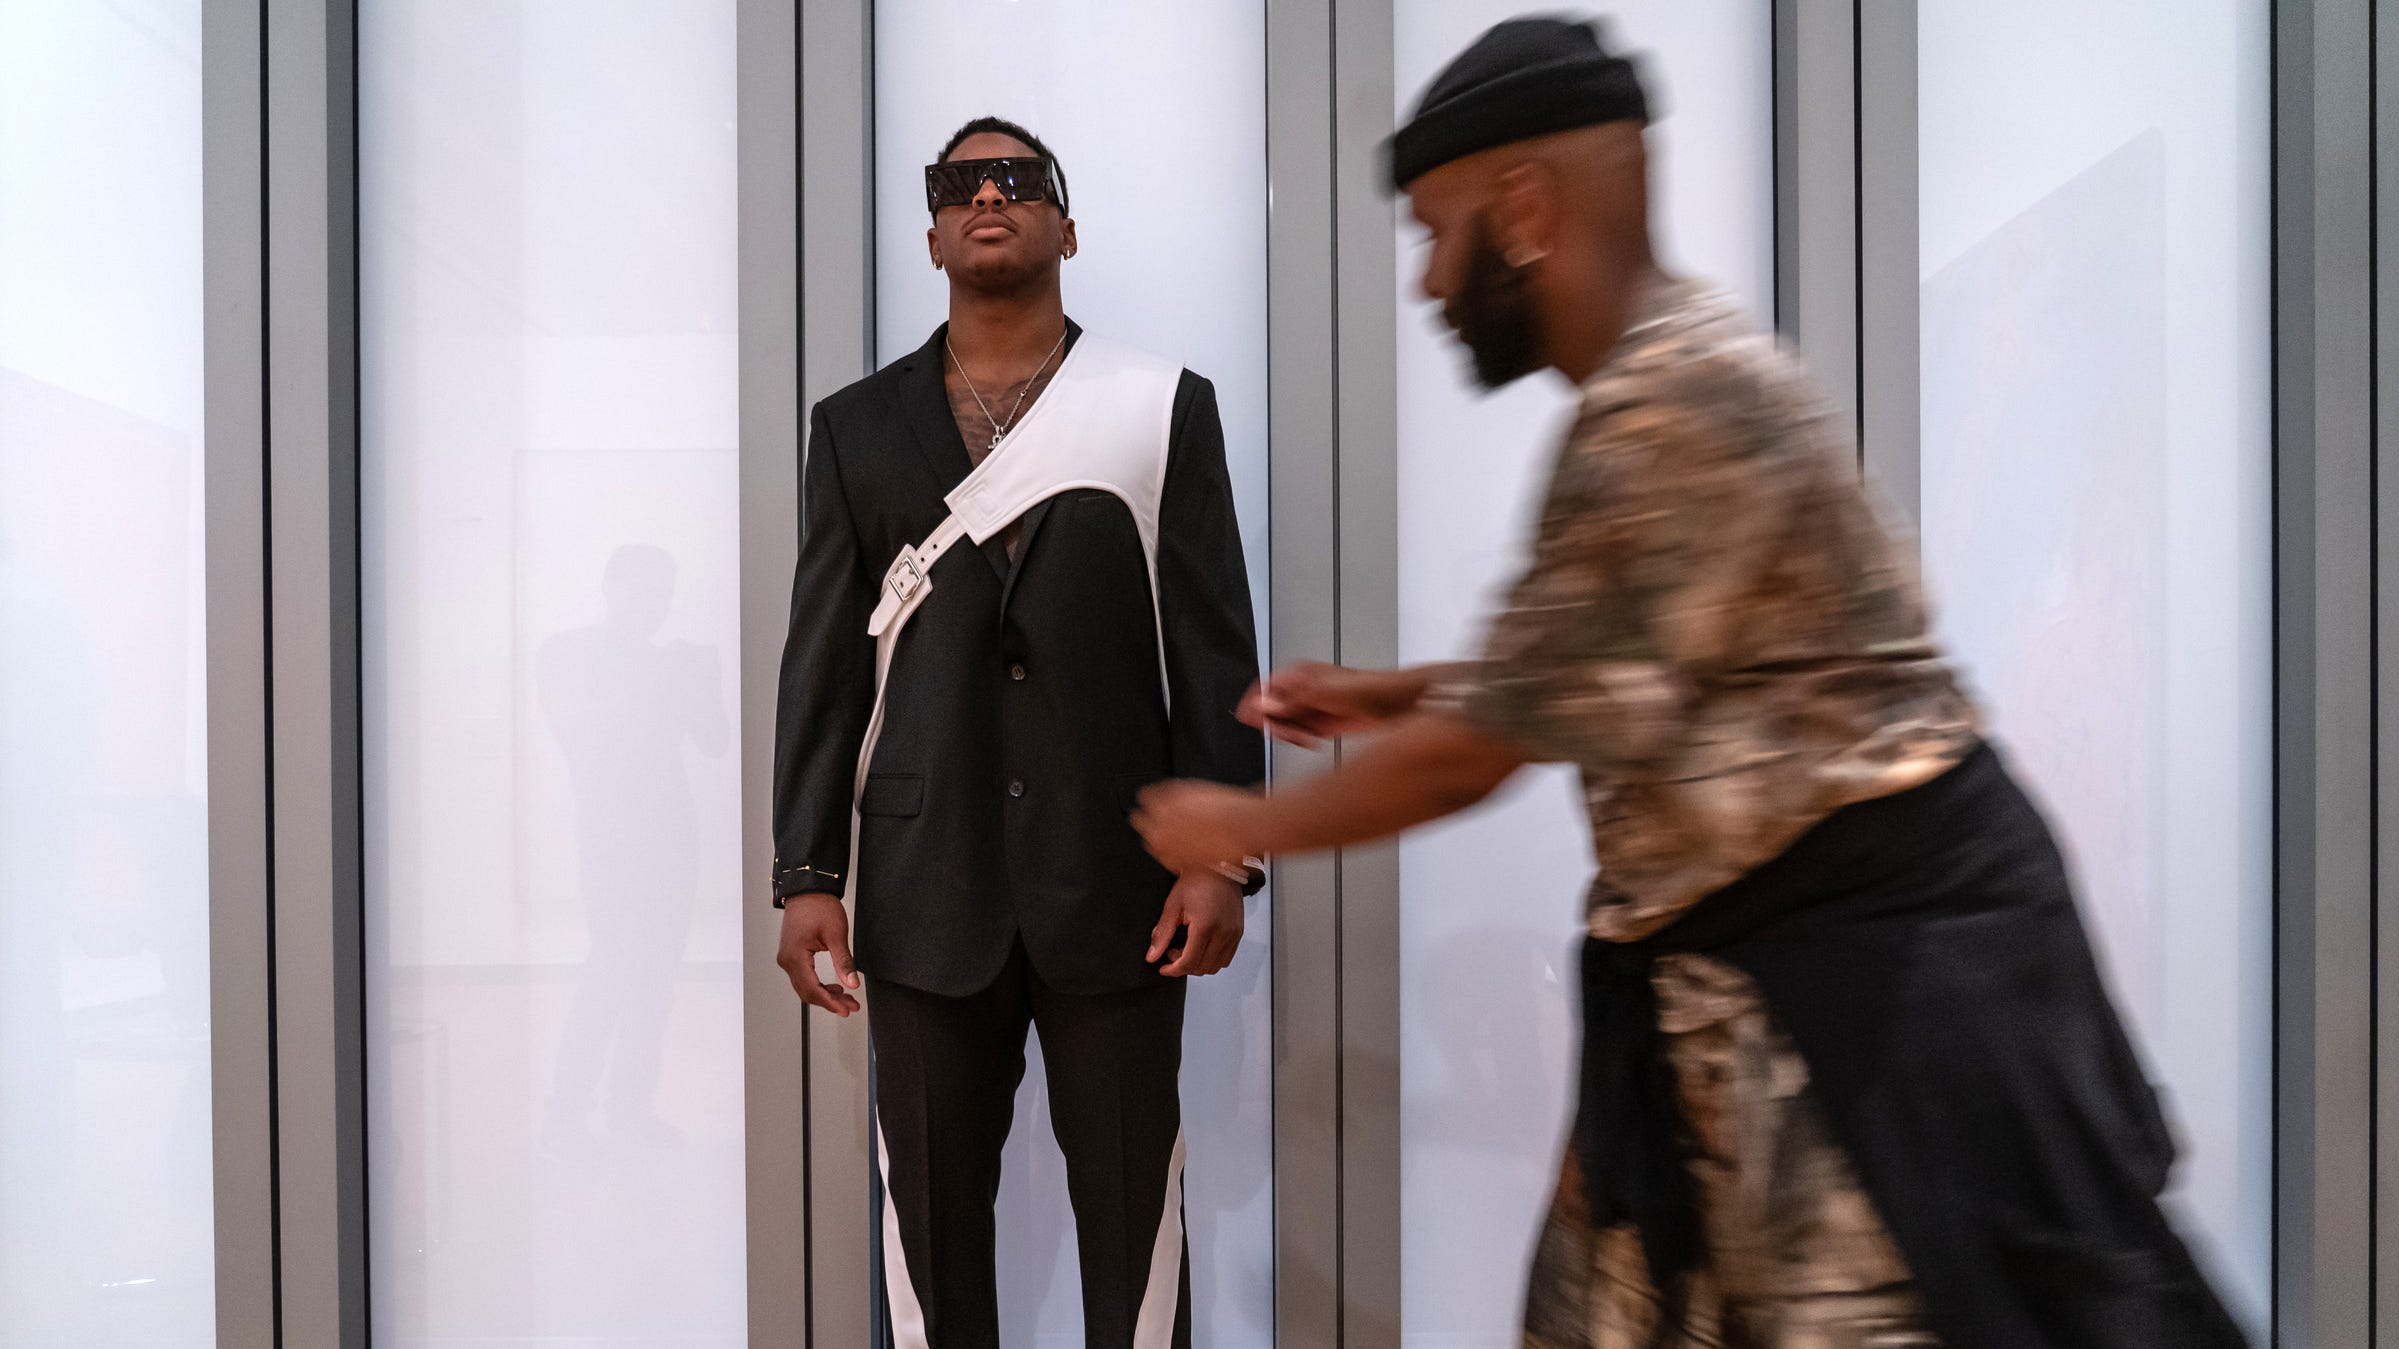 University of Michigan linebacker Devin Bush Jr. stands in his selection of suits to wear for the NFL draft as designer Jatannio moves in to make adjustments at the University of Michigan Museum of Art in Ann Arbor on 2019.